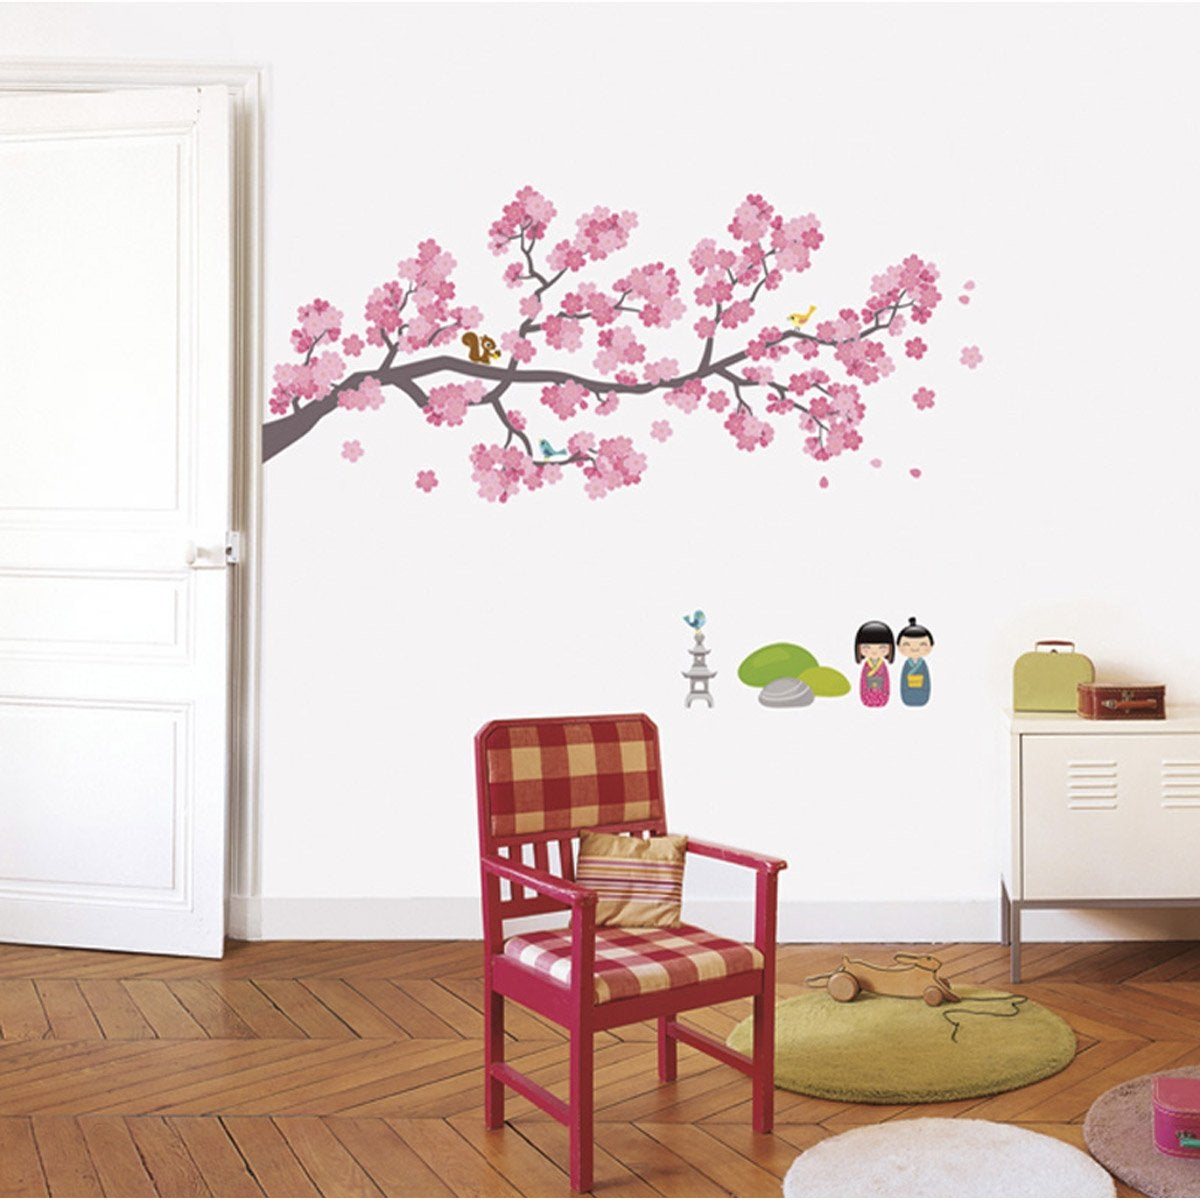 Sticker branches cerisiers 49 cm x 69 cm leroy merlin - Leroy merlin decorazioni ...